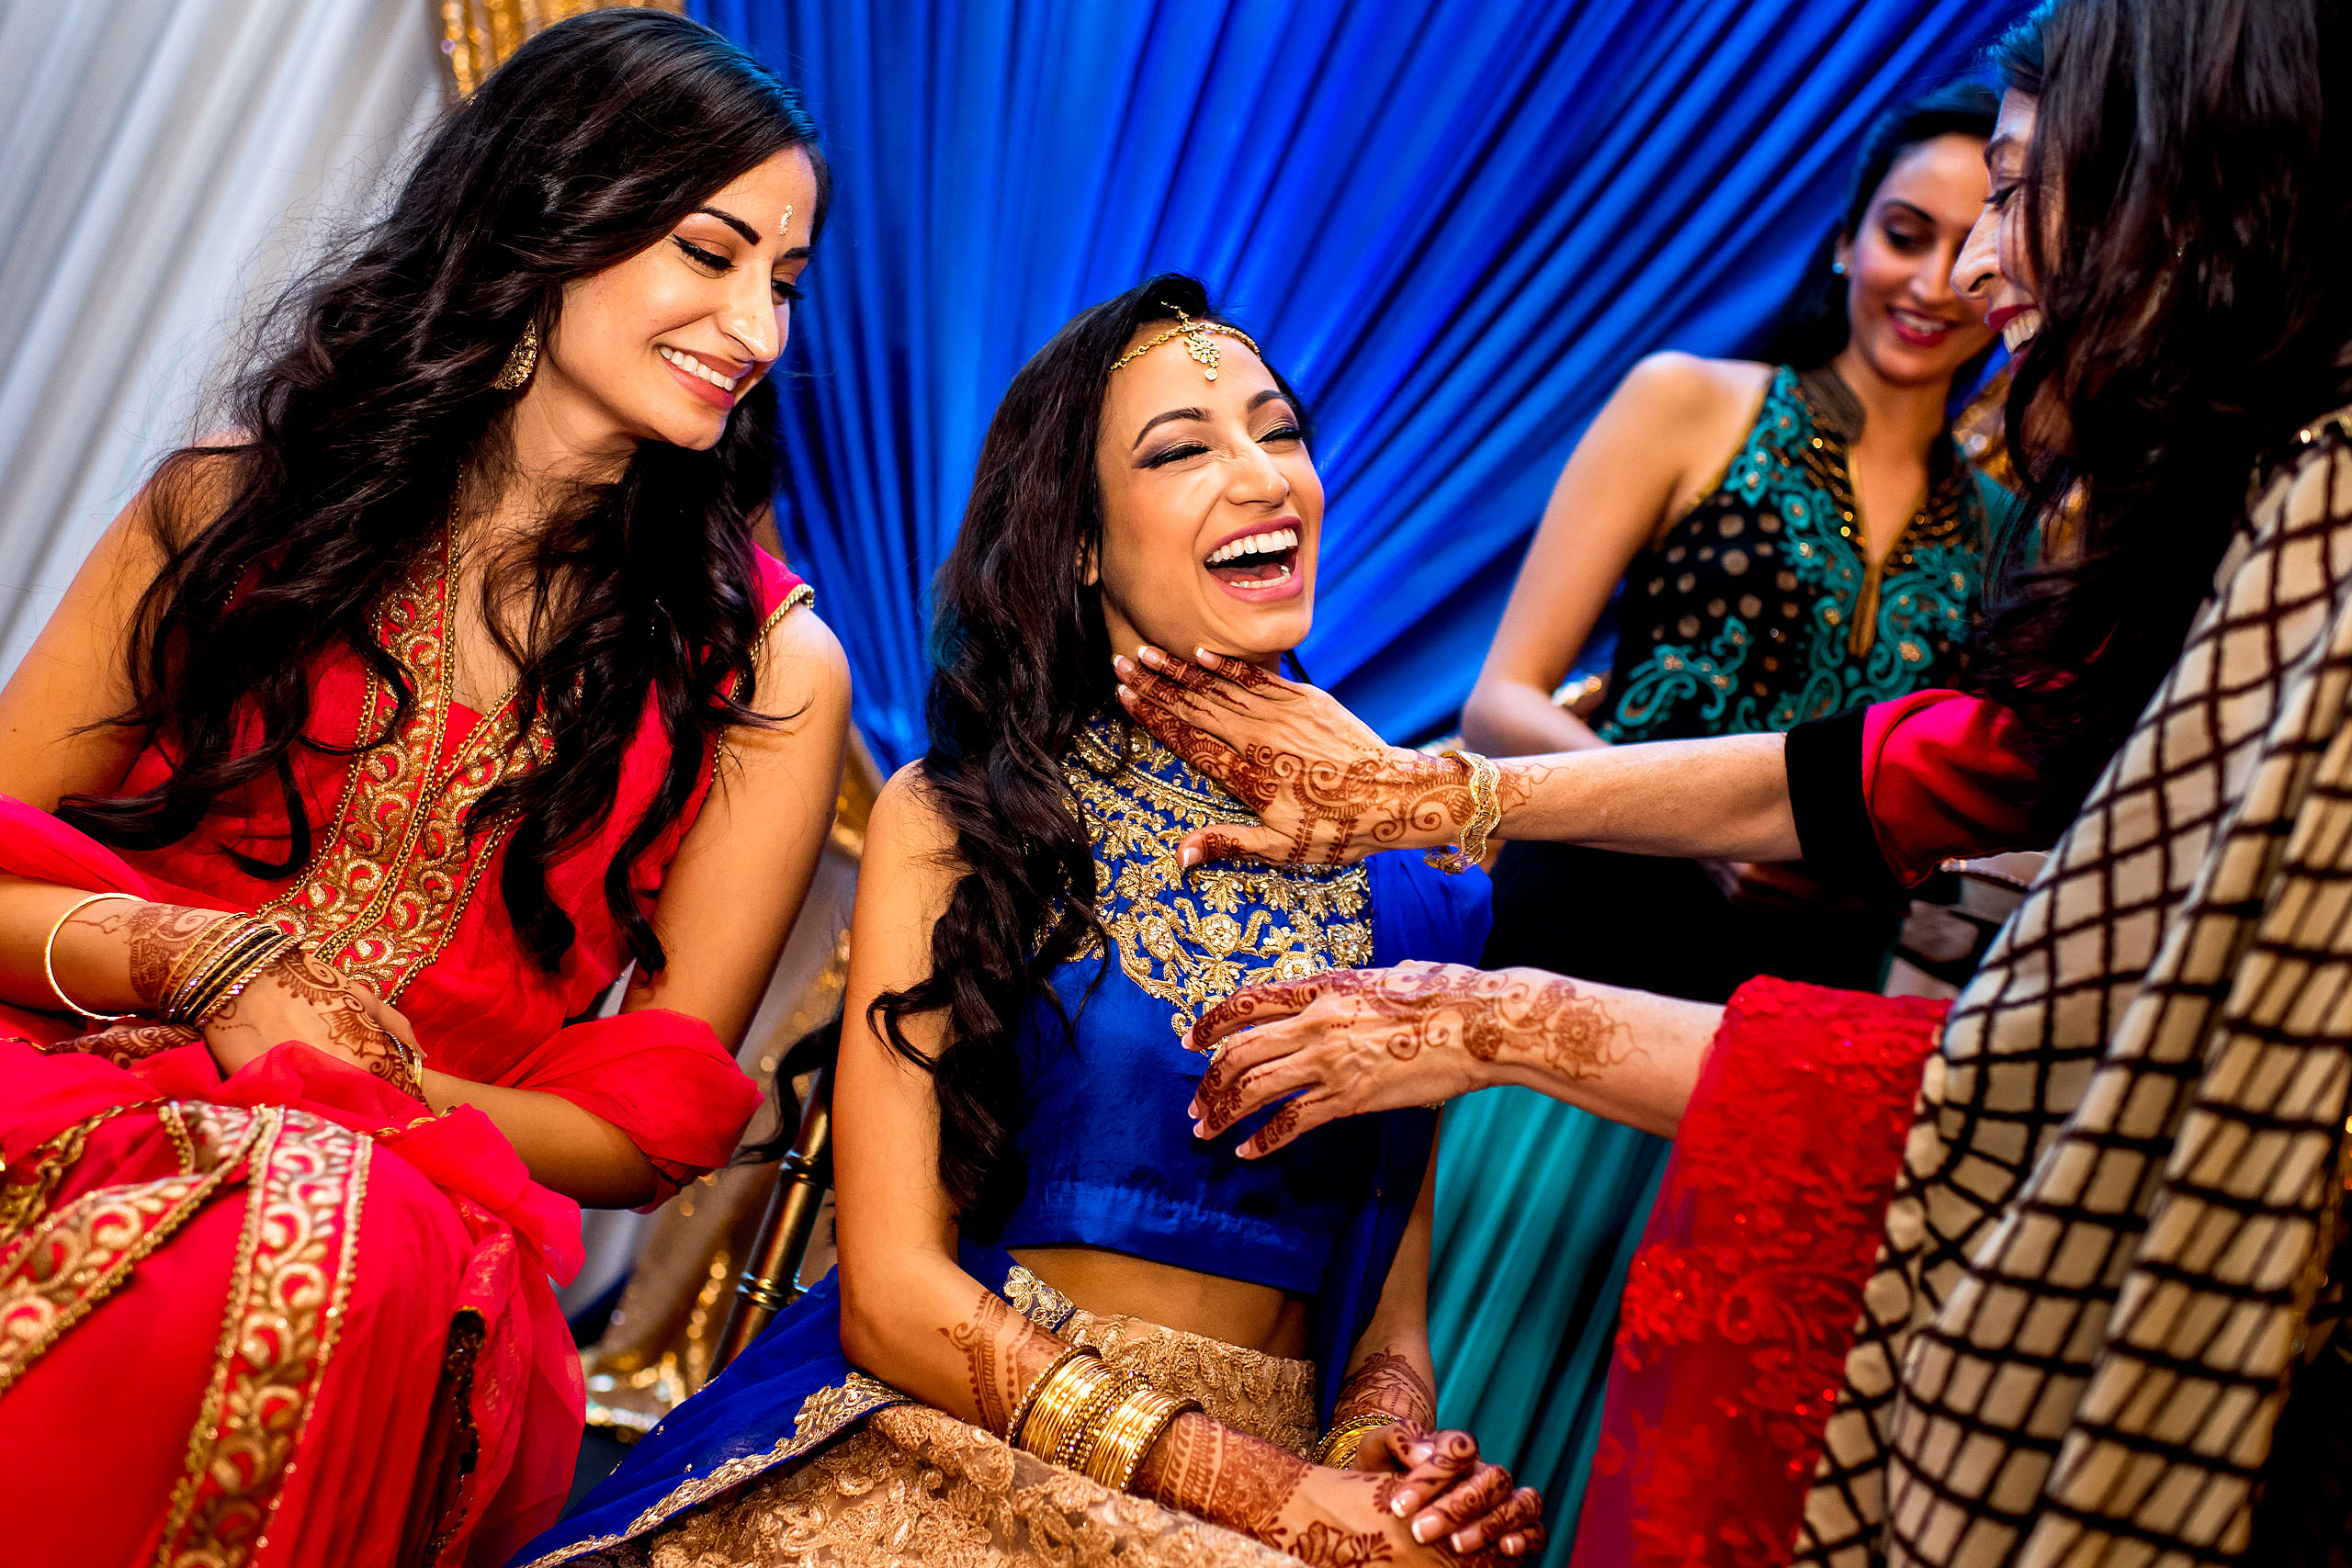 an indian bride laughing by Calgary Banff Wedding Photographer Sean LeBlanc